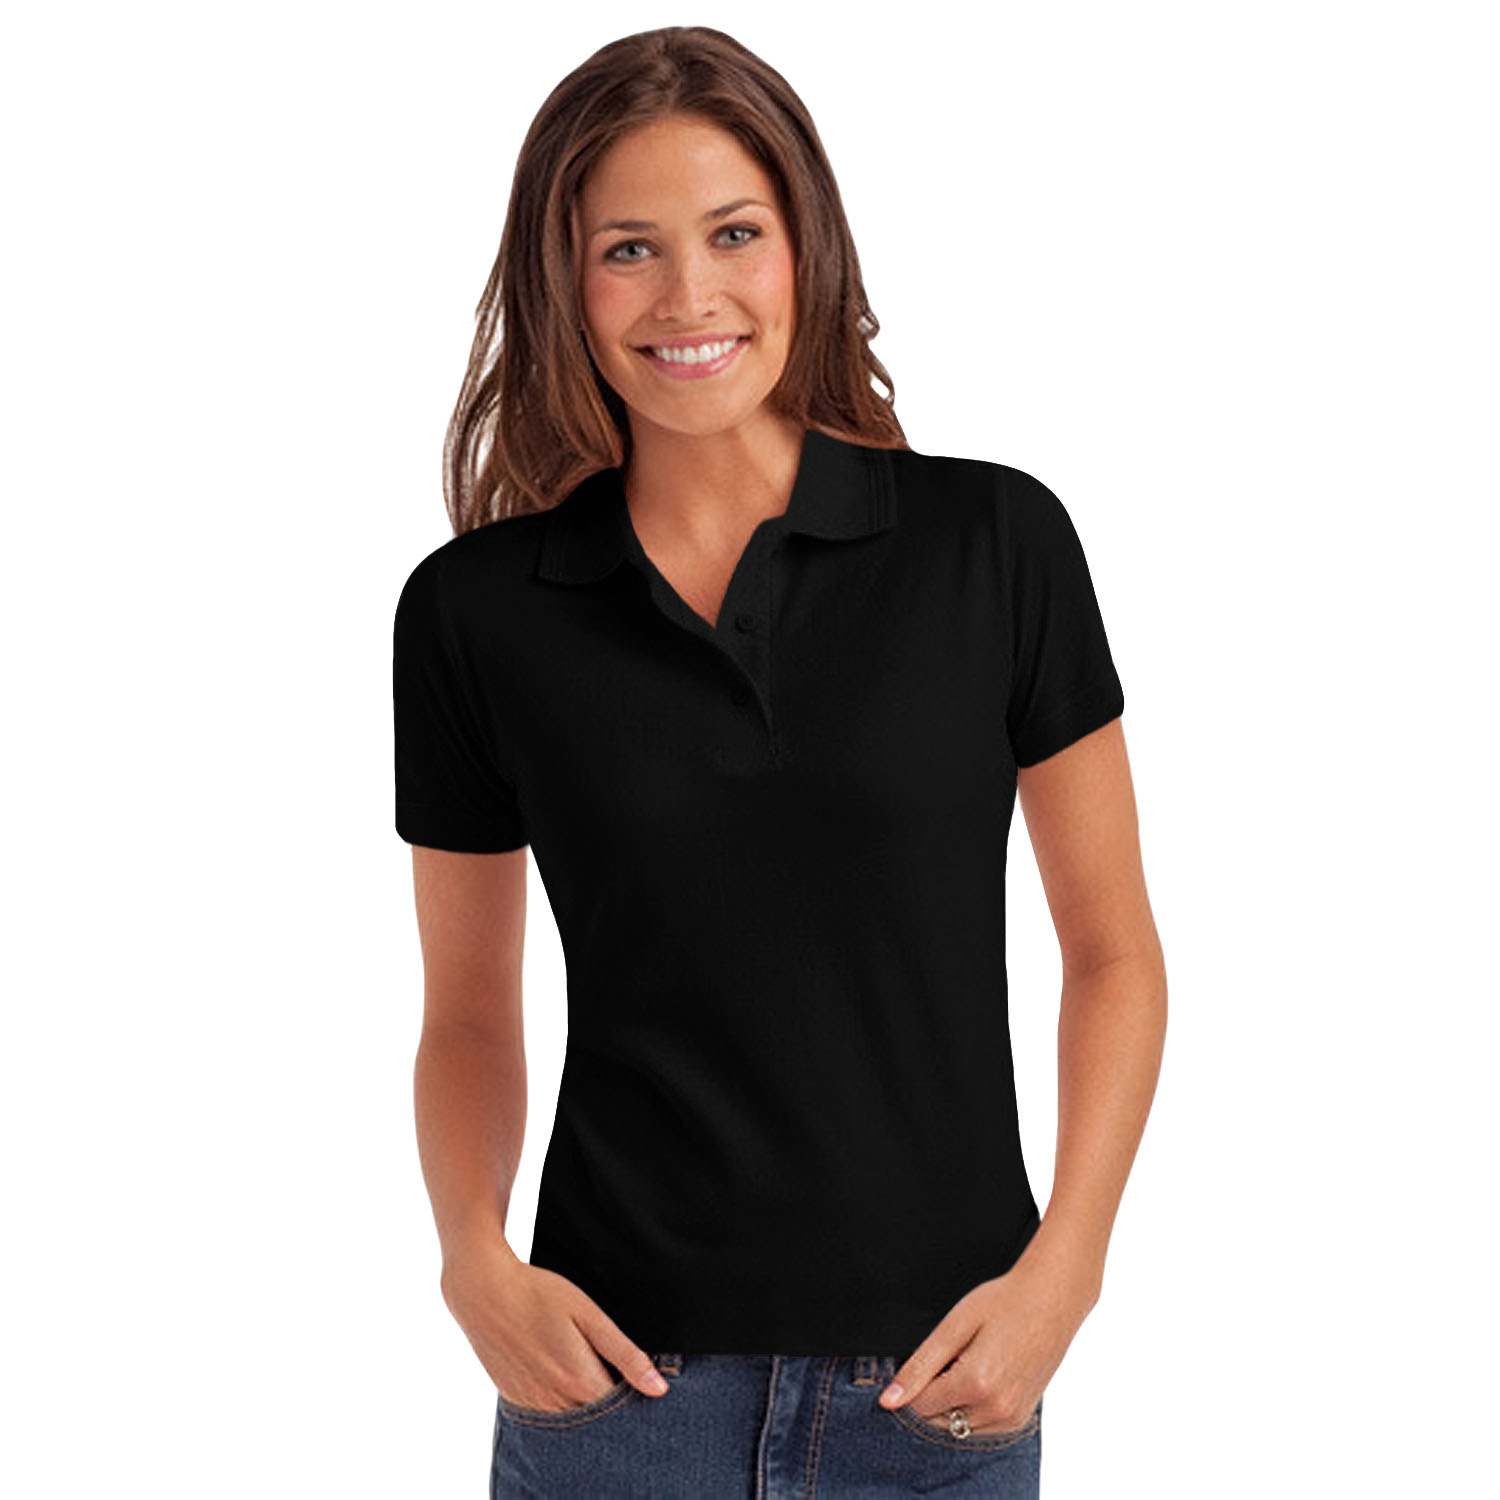 The short sleeve shirt is a mainstay in women's fashion. Choose from casual blouses, open cardigans, tees and women's polo shirts. Pair those skinny jeans or leggings with a short sleeve tunic and strappy heels, and complete the look with elongated necklaces.